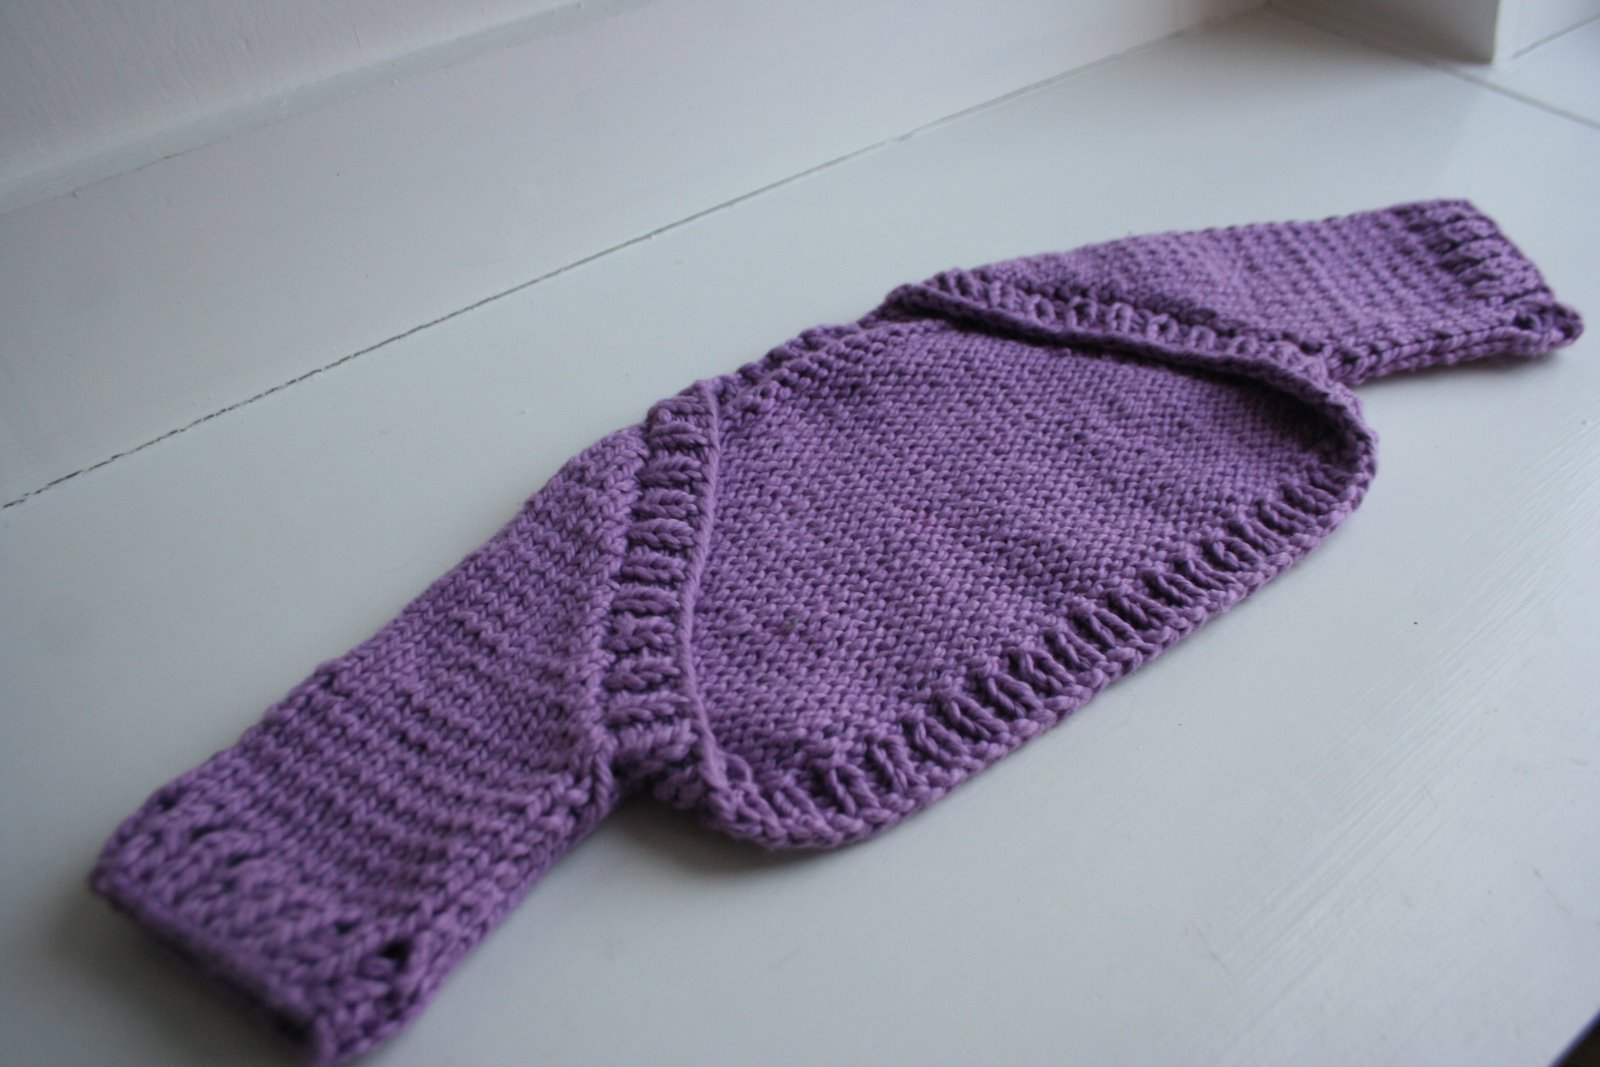 Ravelry Knitting Pattern Central Related Keywords & Suggestions - Ravelry...